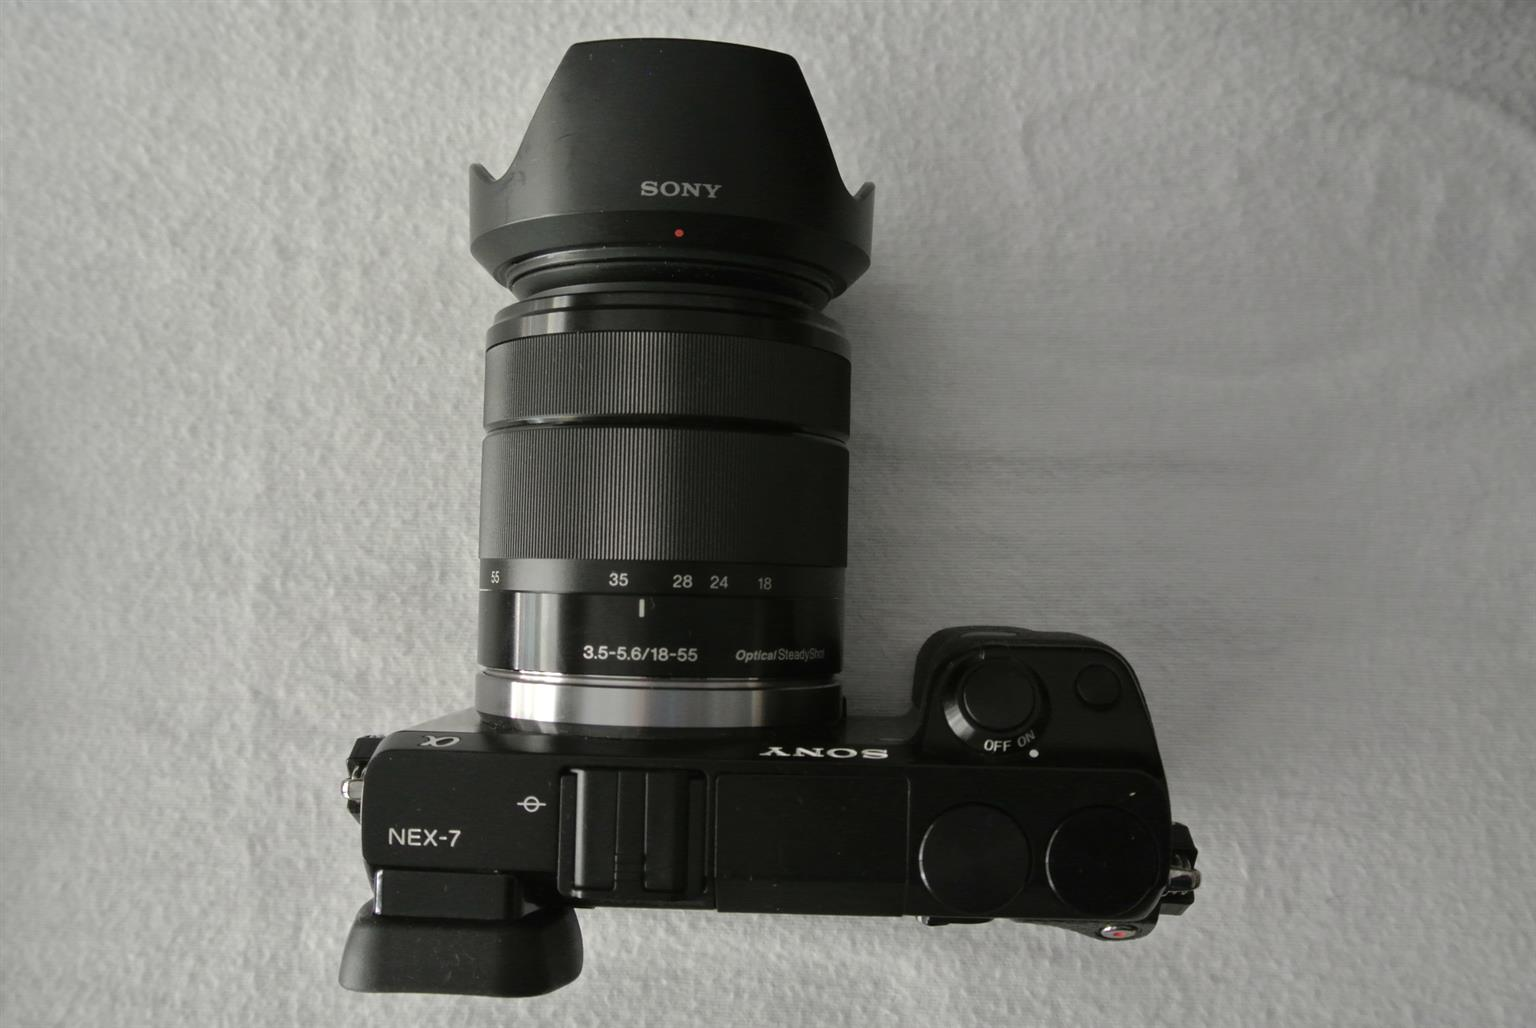 Sony NEX-7 24.3 MP Mirrorless Digital Camera with 18-55mm Lens